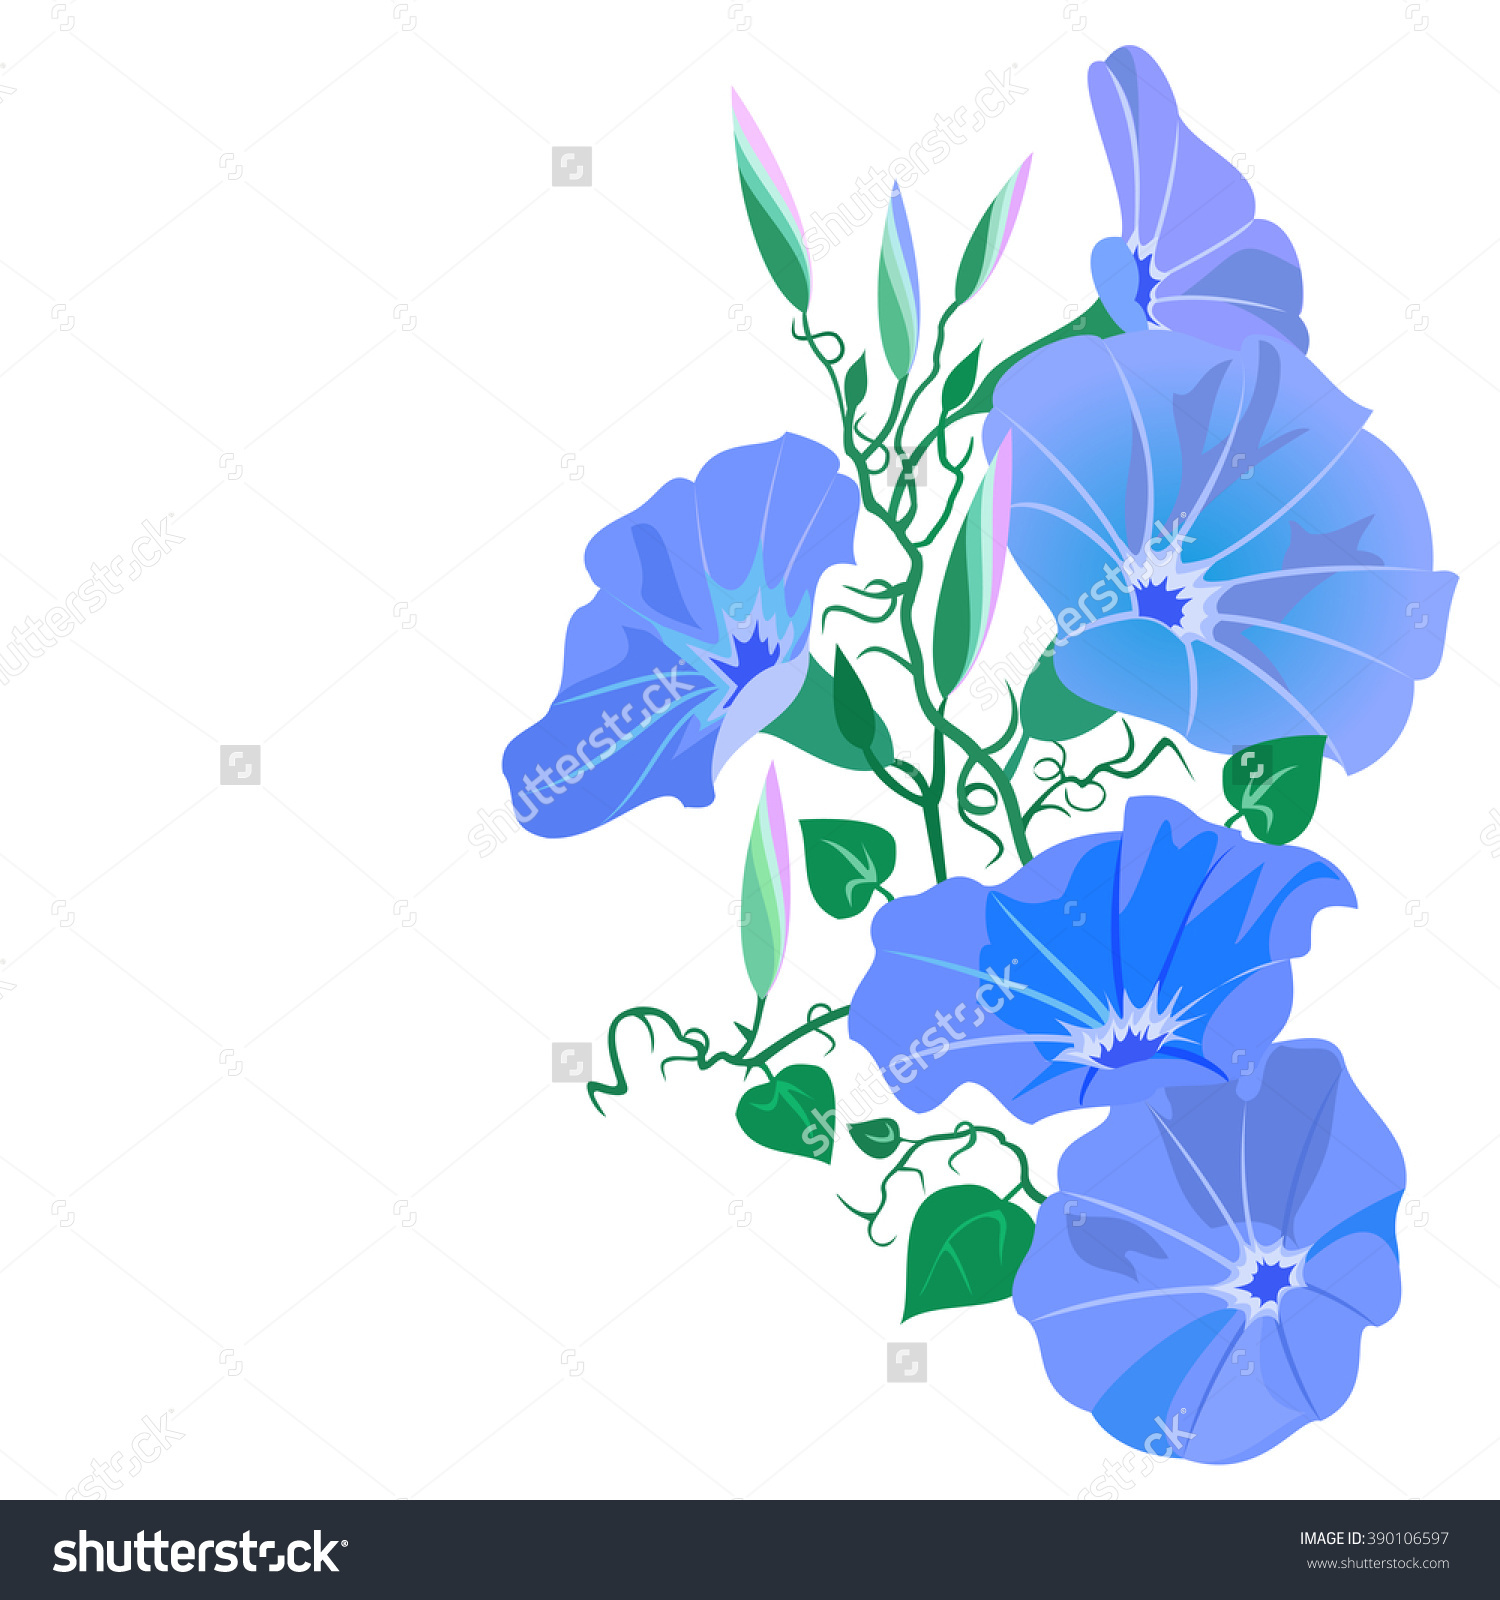 Morning Glory Vine Ipomoea Tricolor Hand Stock Vector 390106597.